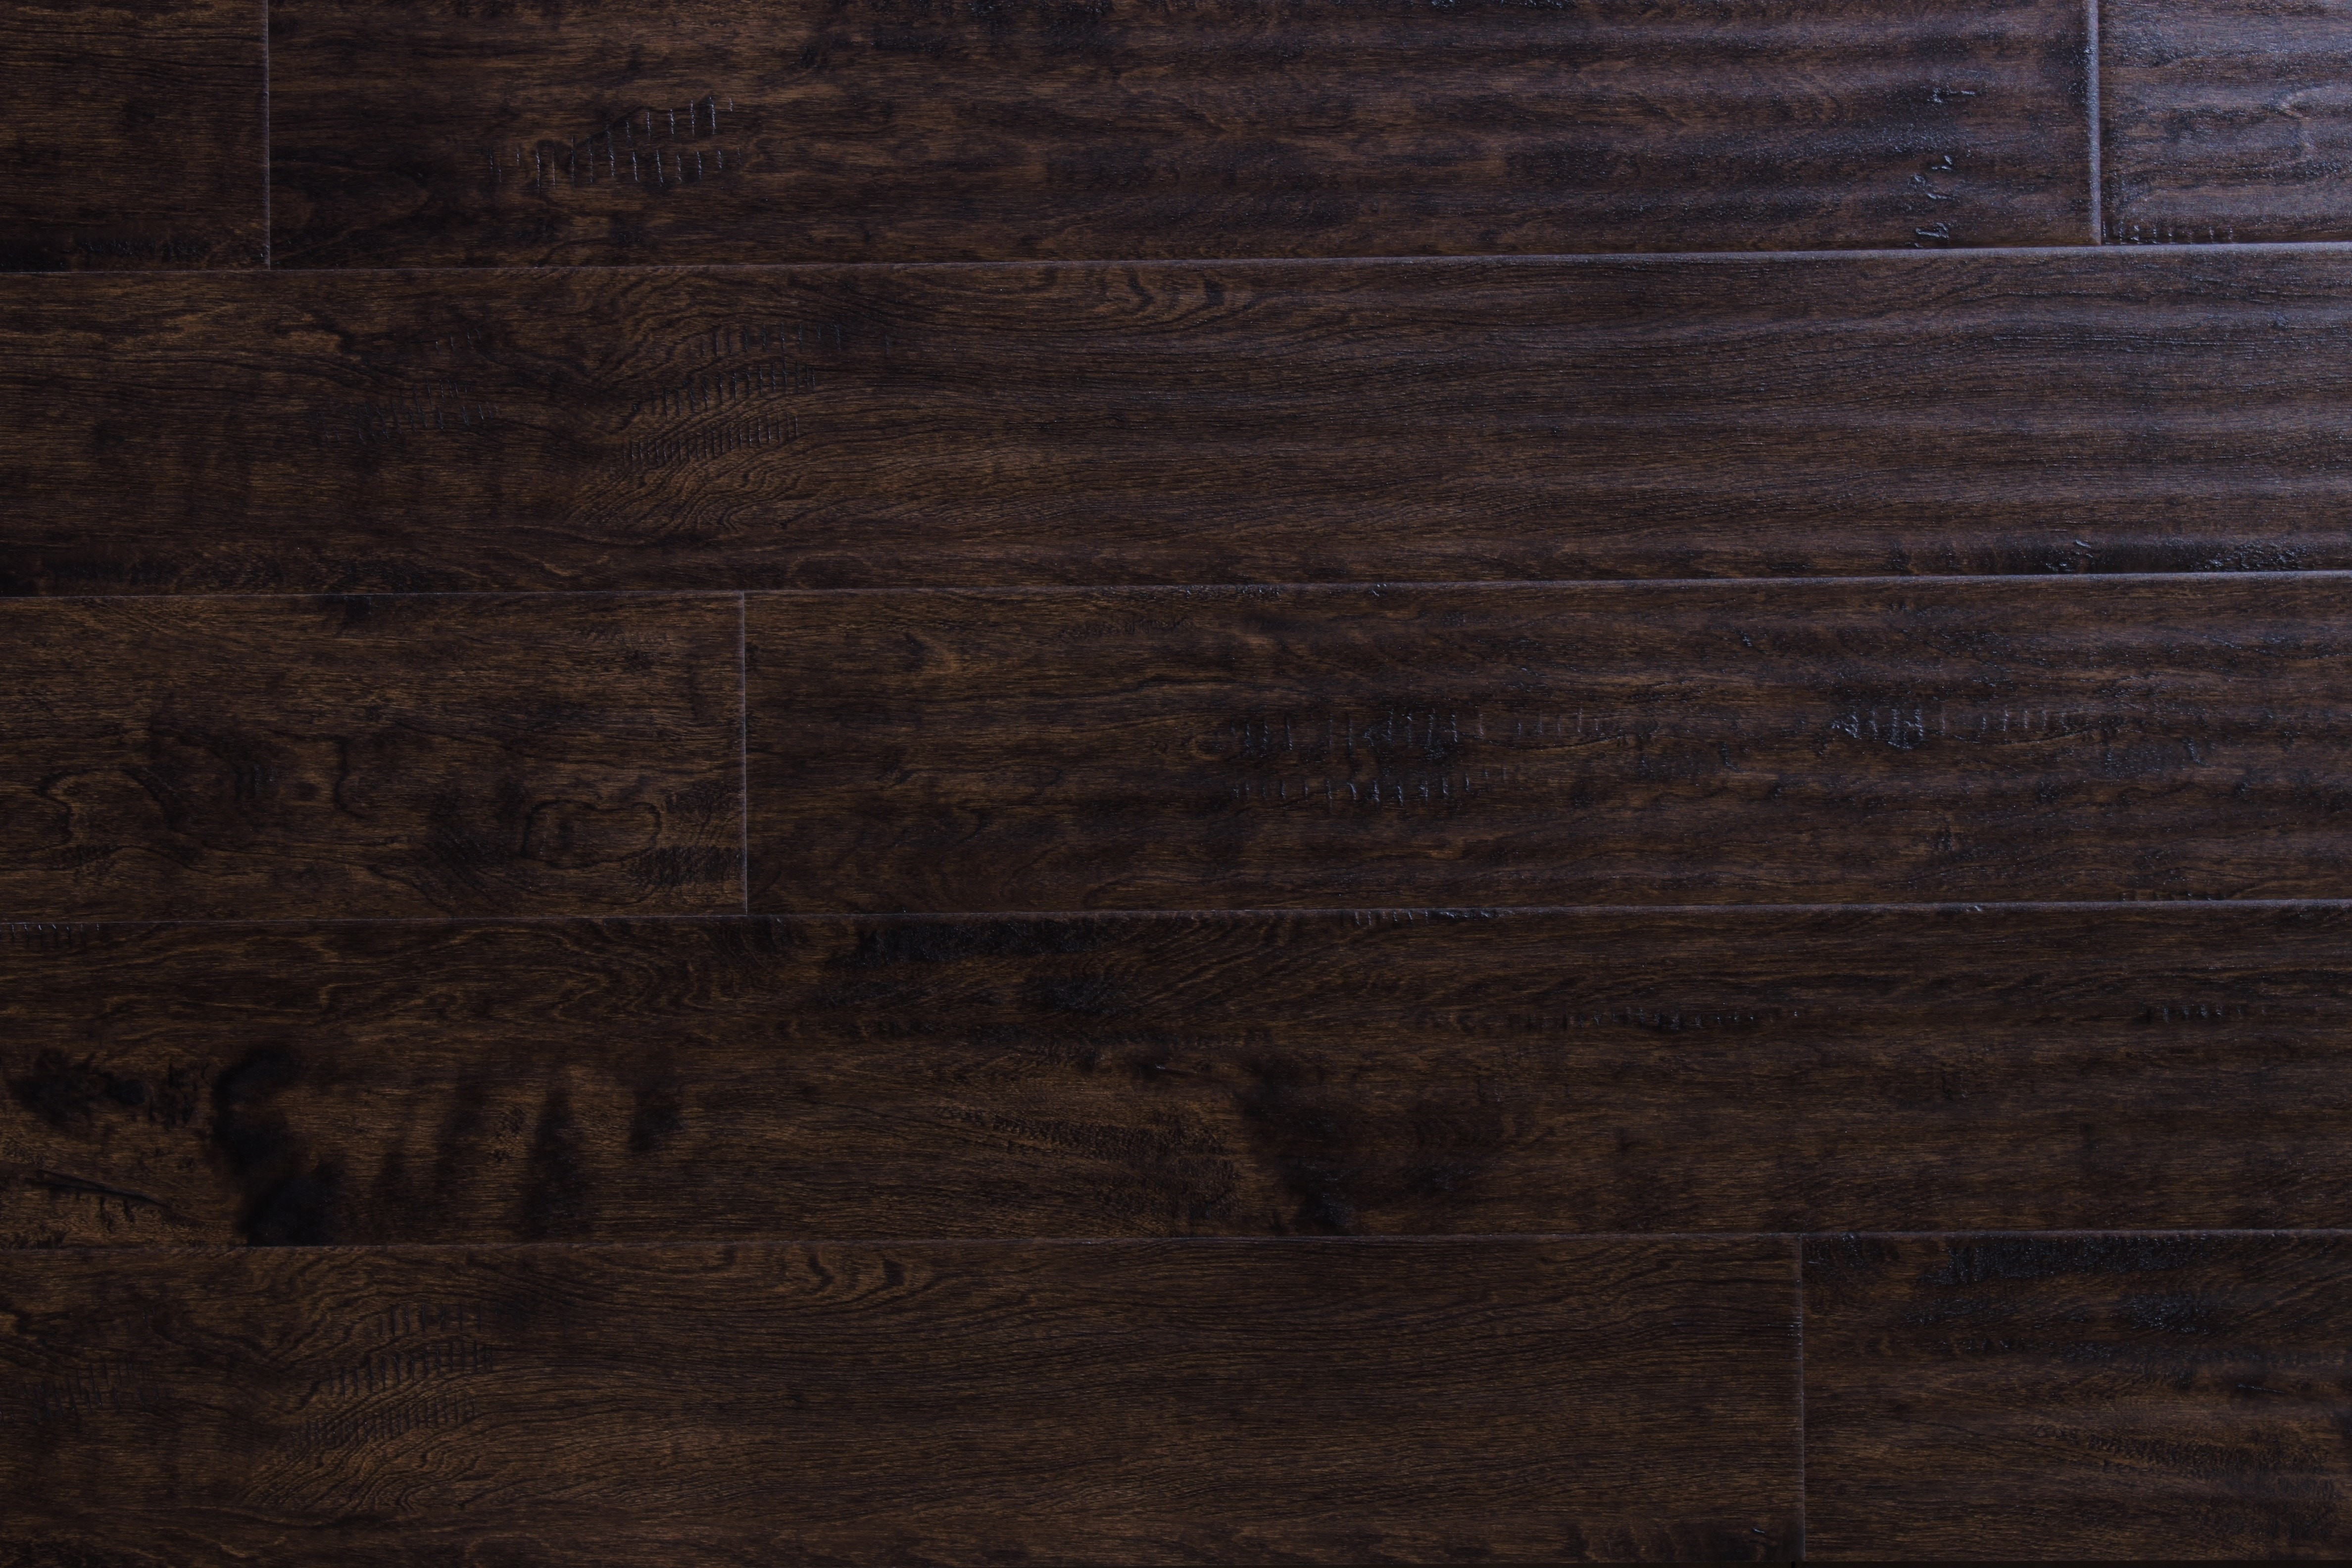 26 Lovely Acacia Engineered Hardwood Flooring 2021 free download acacia engineered hardwood flooring of wood flooring free samples available at builddirecta with regard to tailor multi gb 5874277bb8d3c